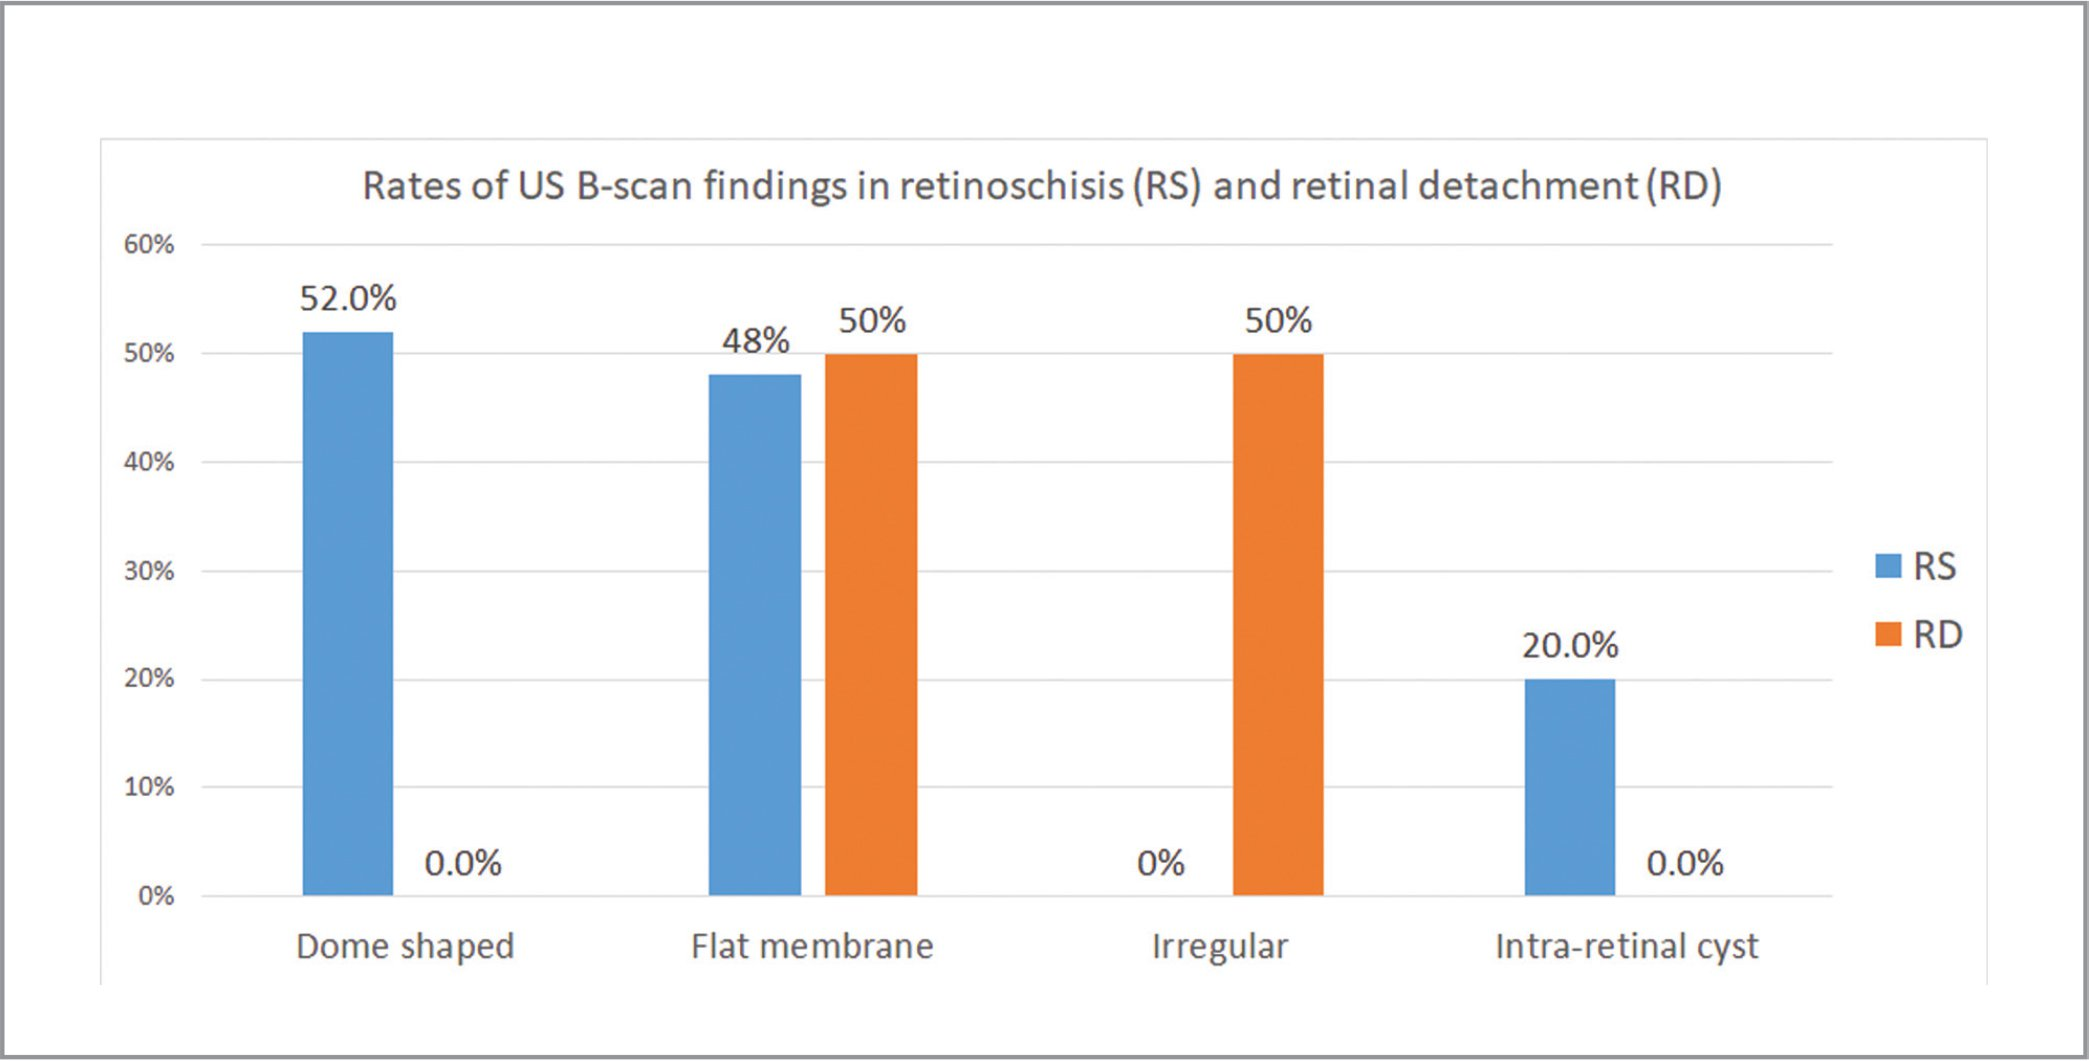 Rates of ultrasonography (US) B-scan findings in retinoschisis (RS) and retinal detachment (RD).